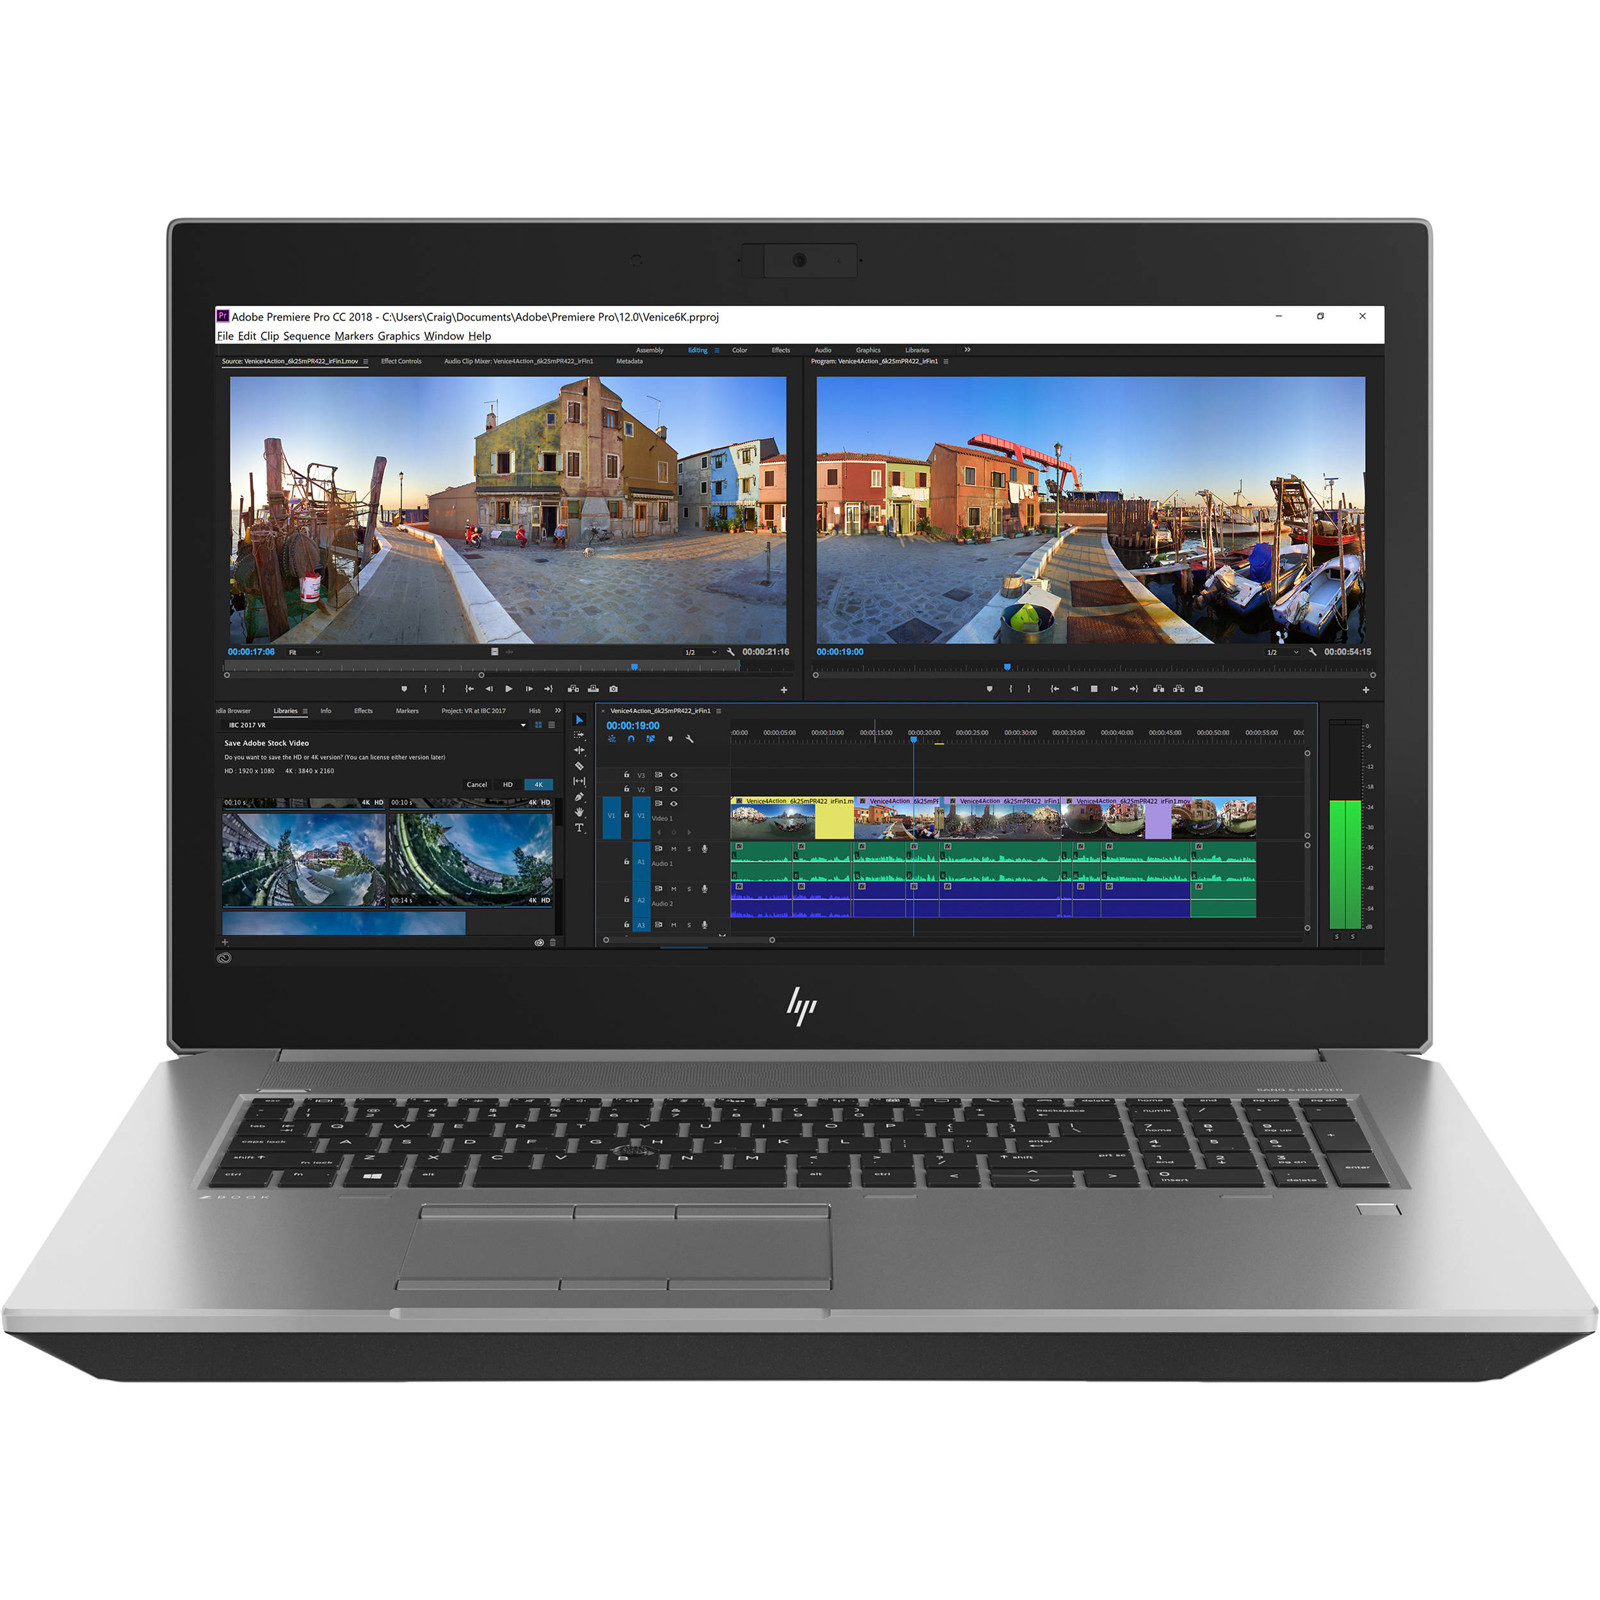 Buy The Hp Zbook 15 G5 Mobile Workstation Intel Core I7